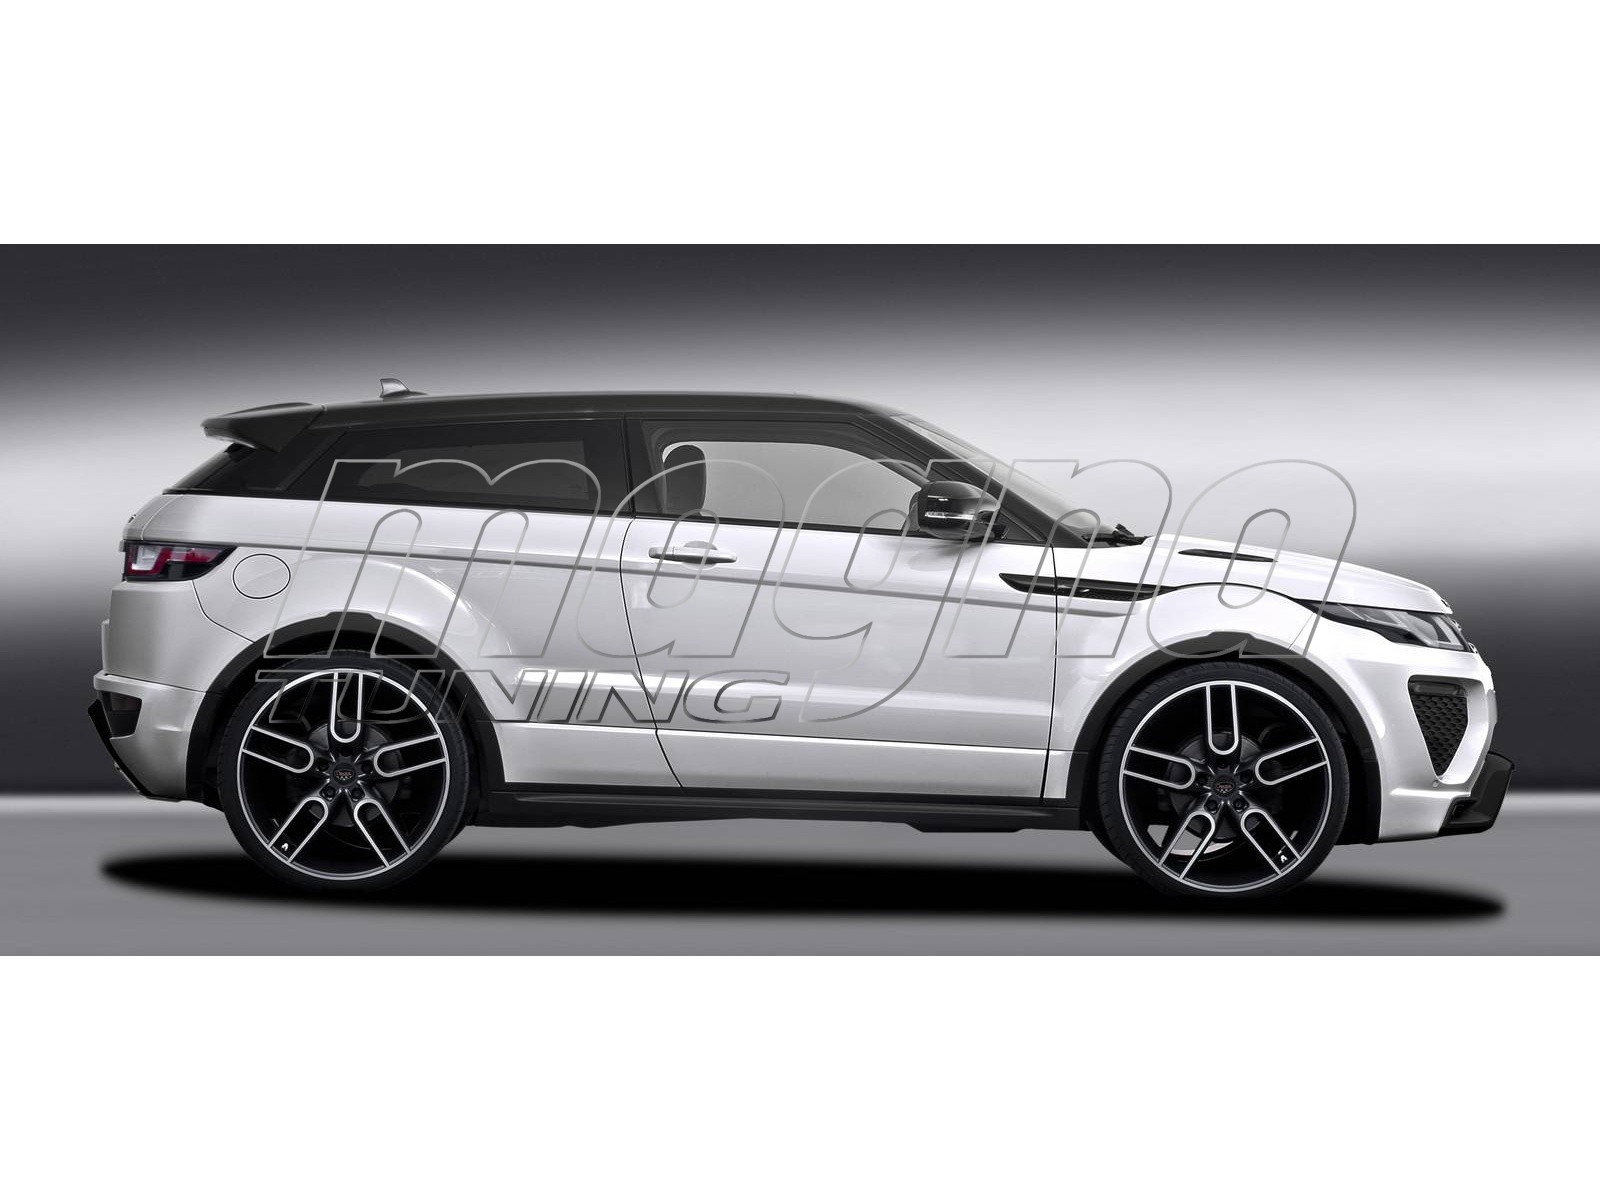 land rover range rover evoque cx body kit. Black Bedroom Furniture Sets. Home Design Ideas